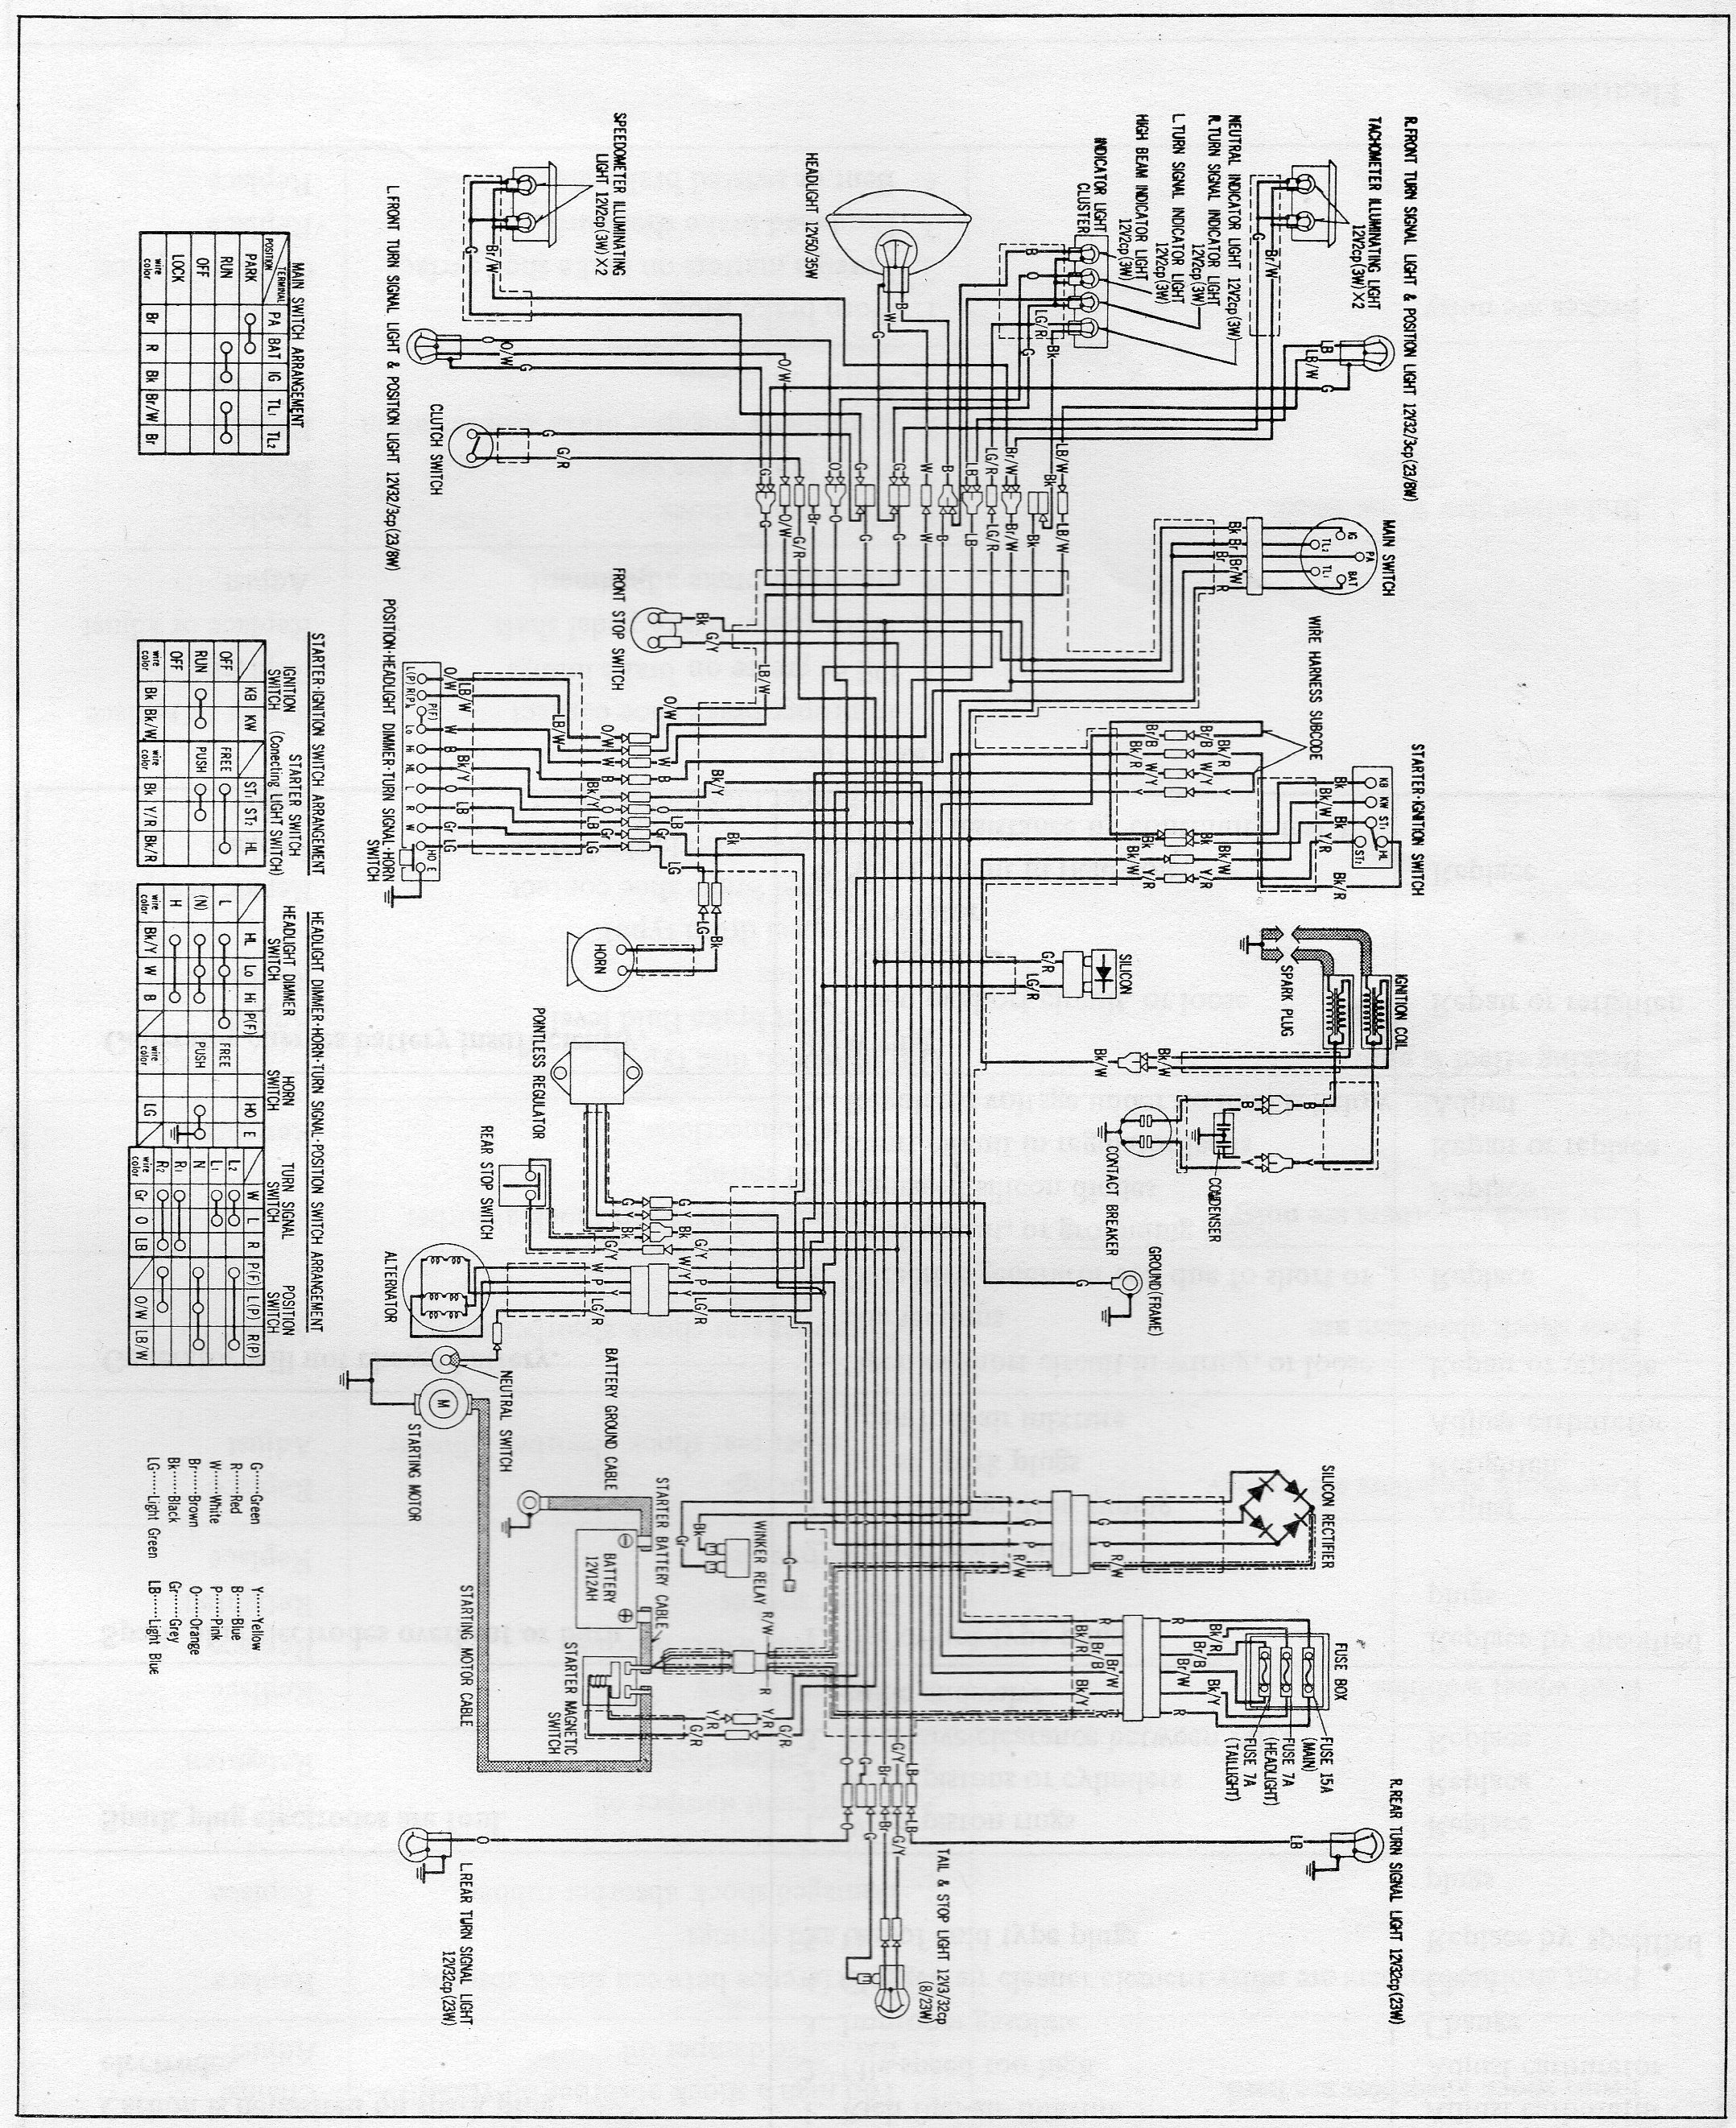 First Co Wiring Diagram from www.hondatwins.net